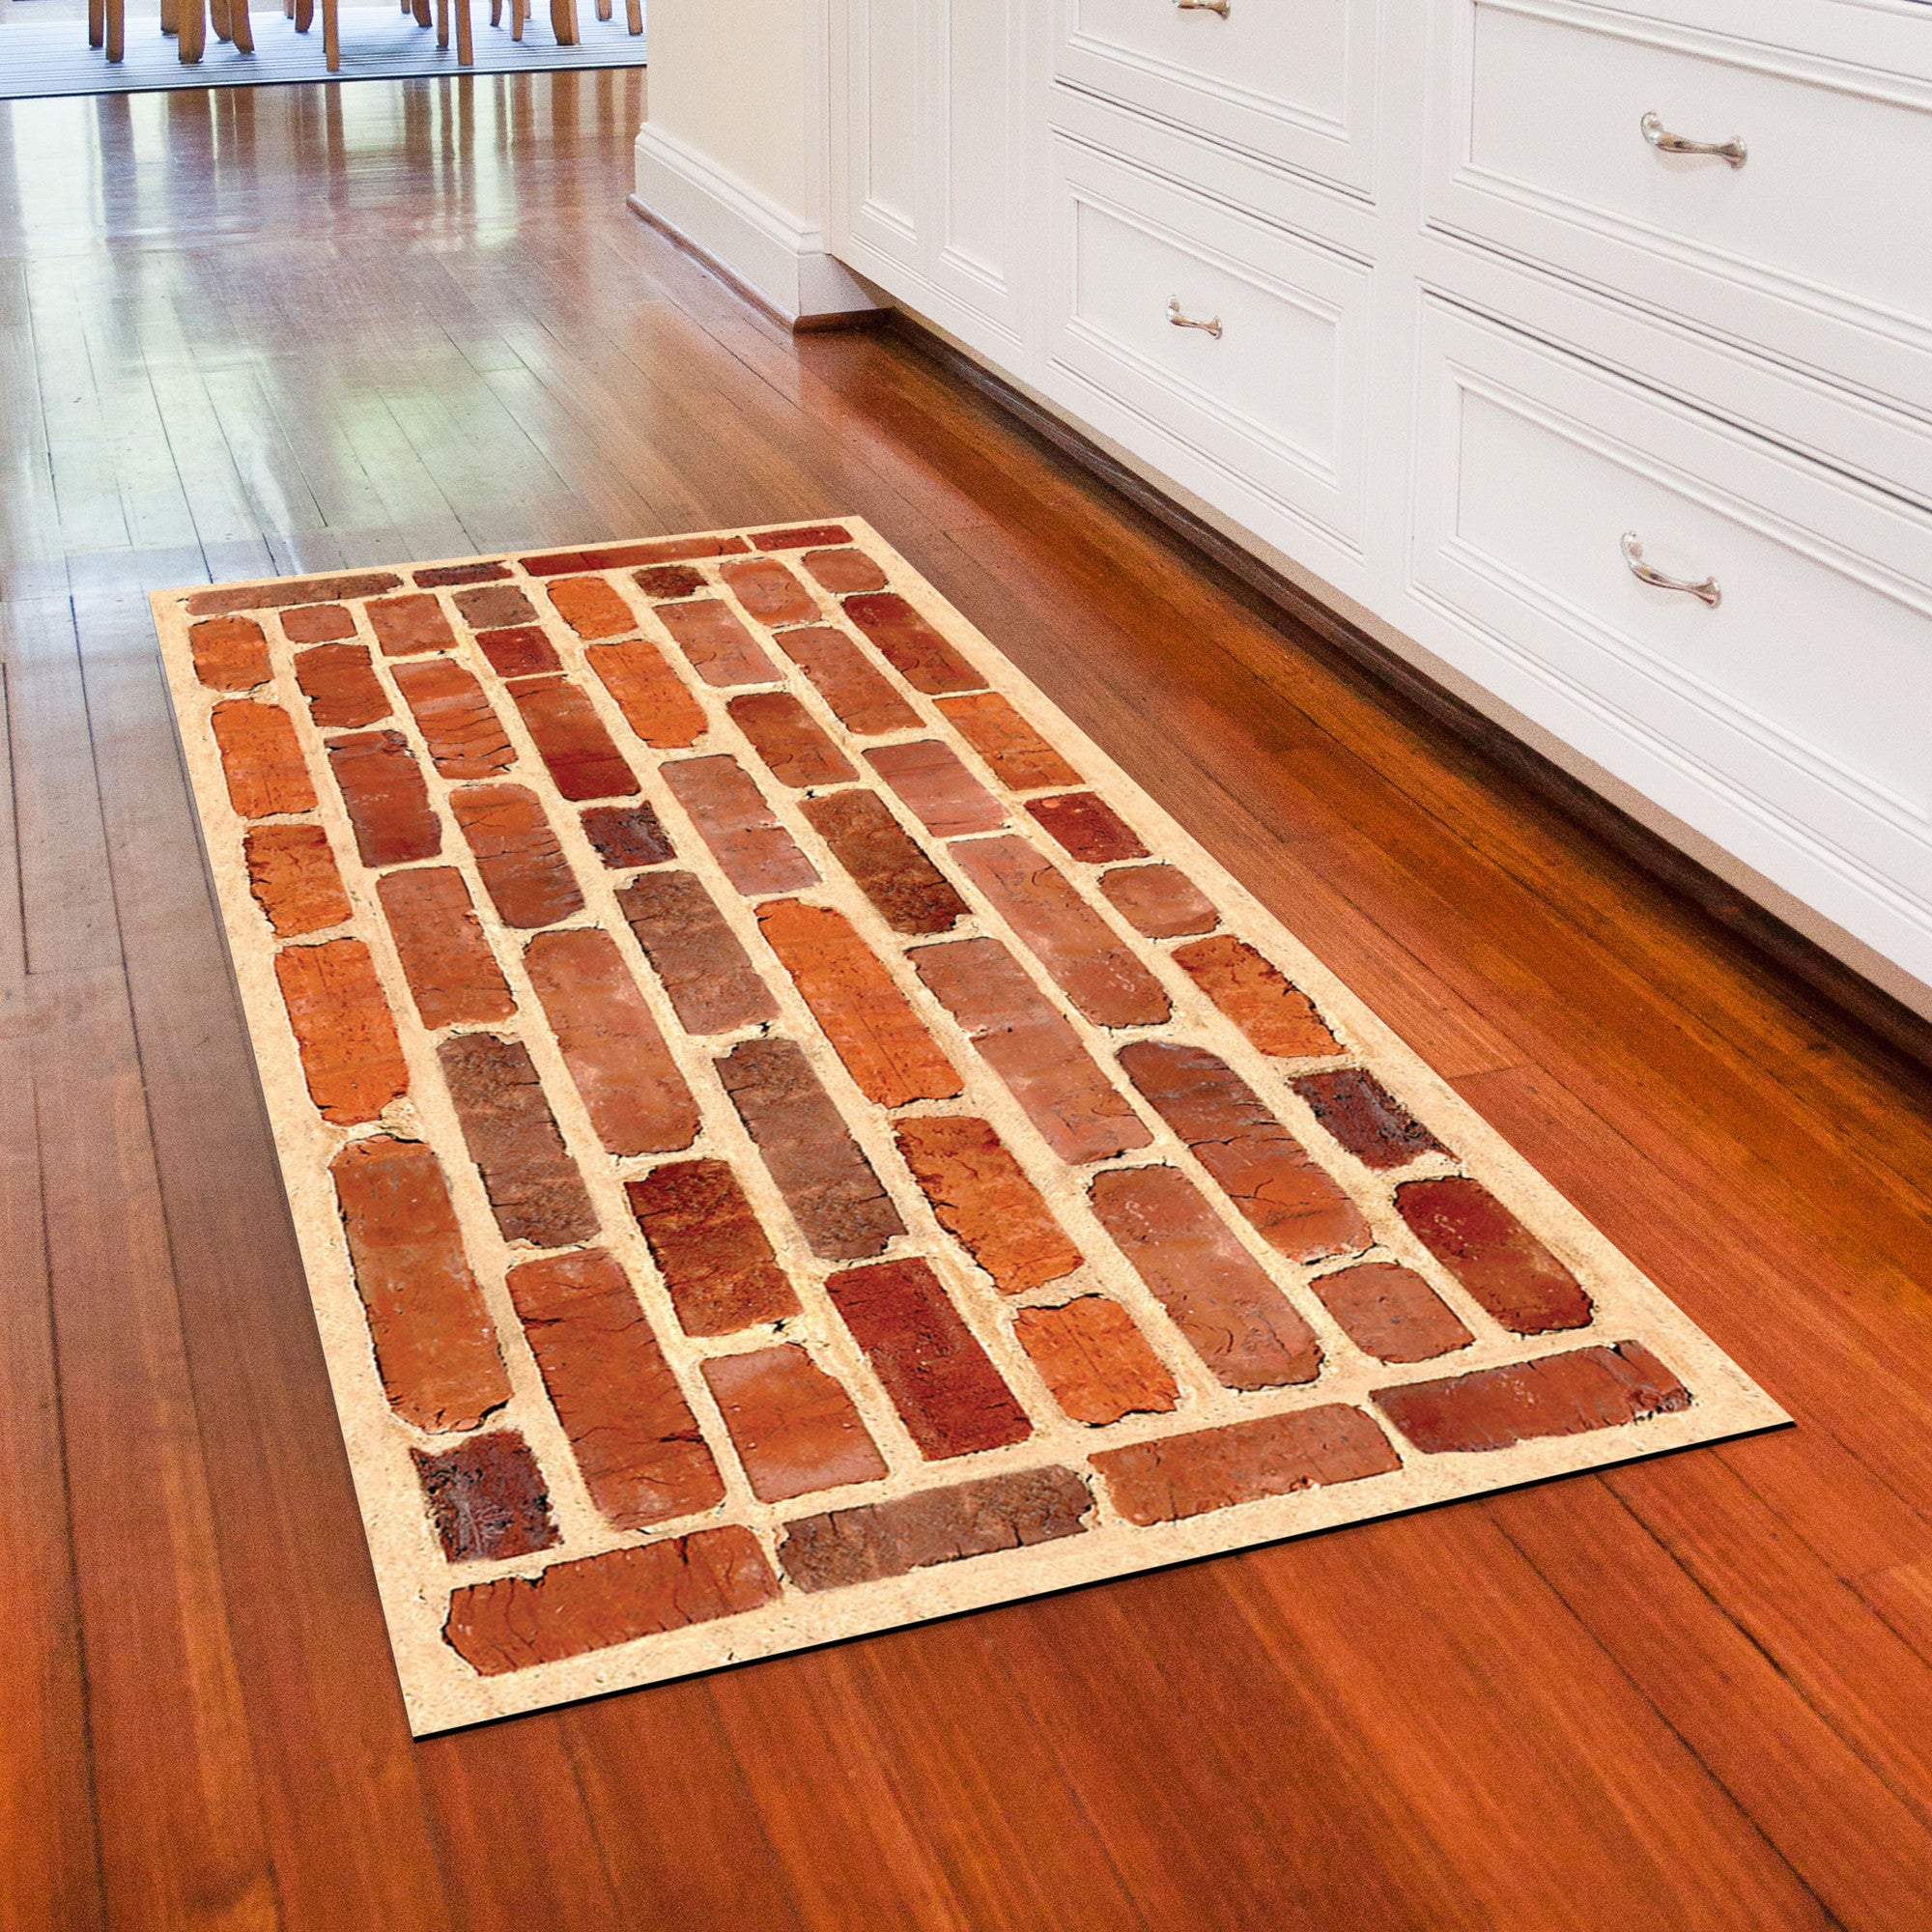 Wholesale- (2 units) Another Brick FoFlor Accent Mats